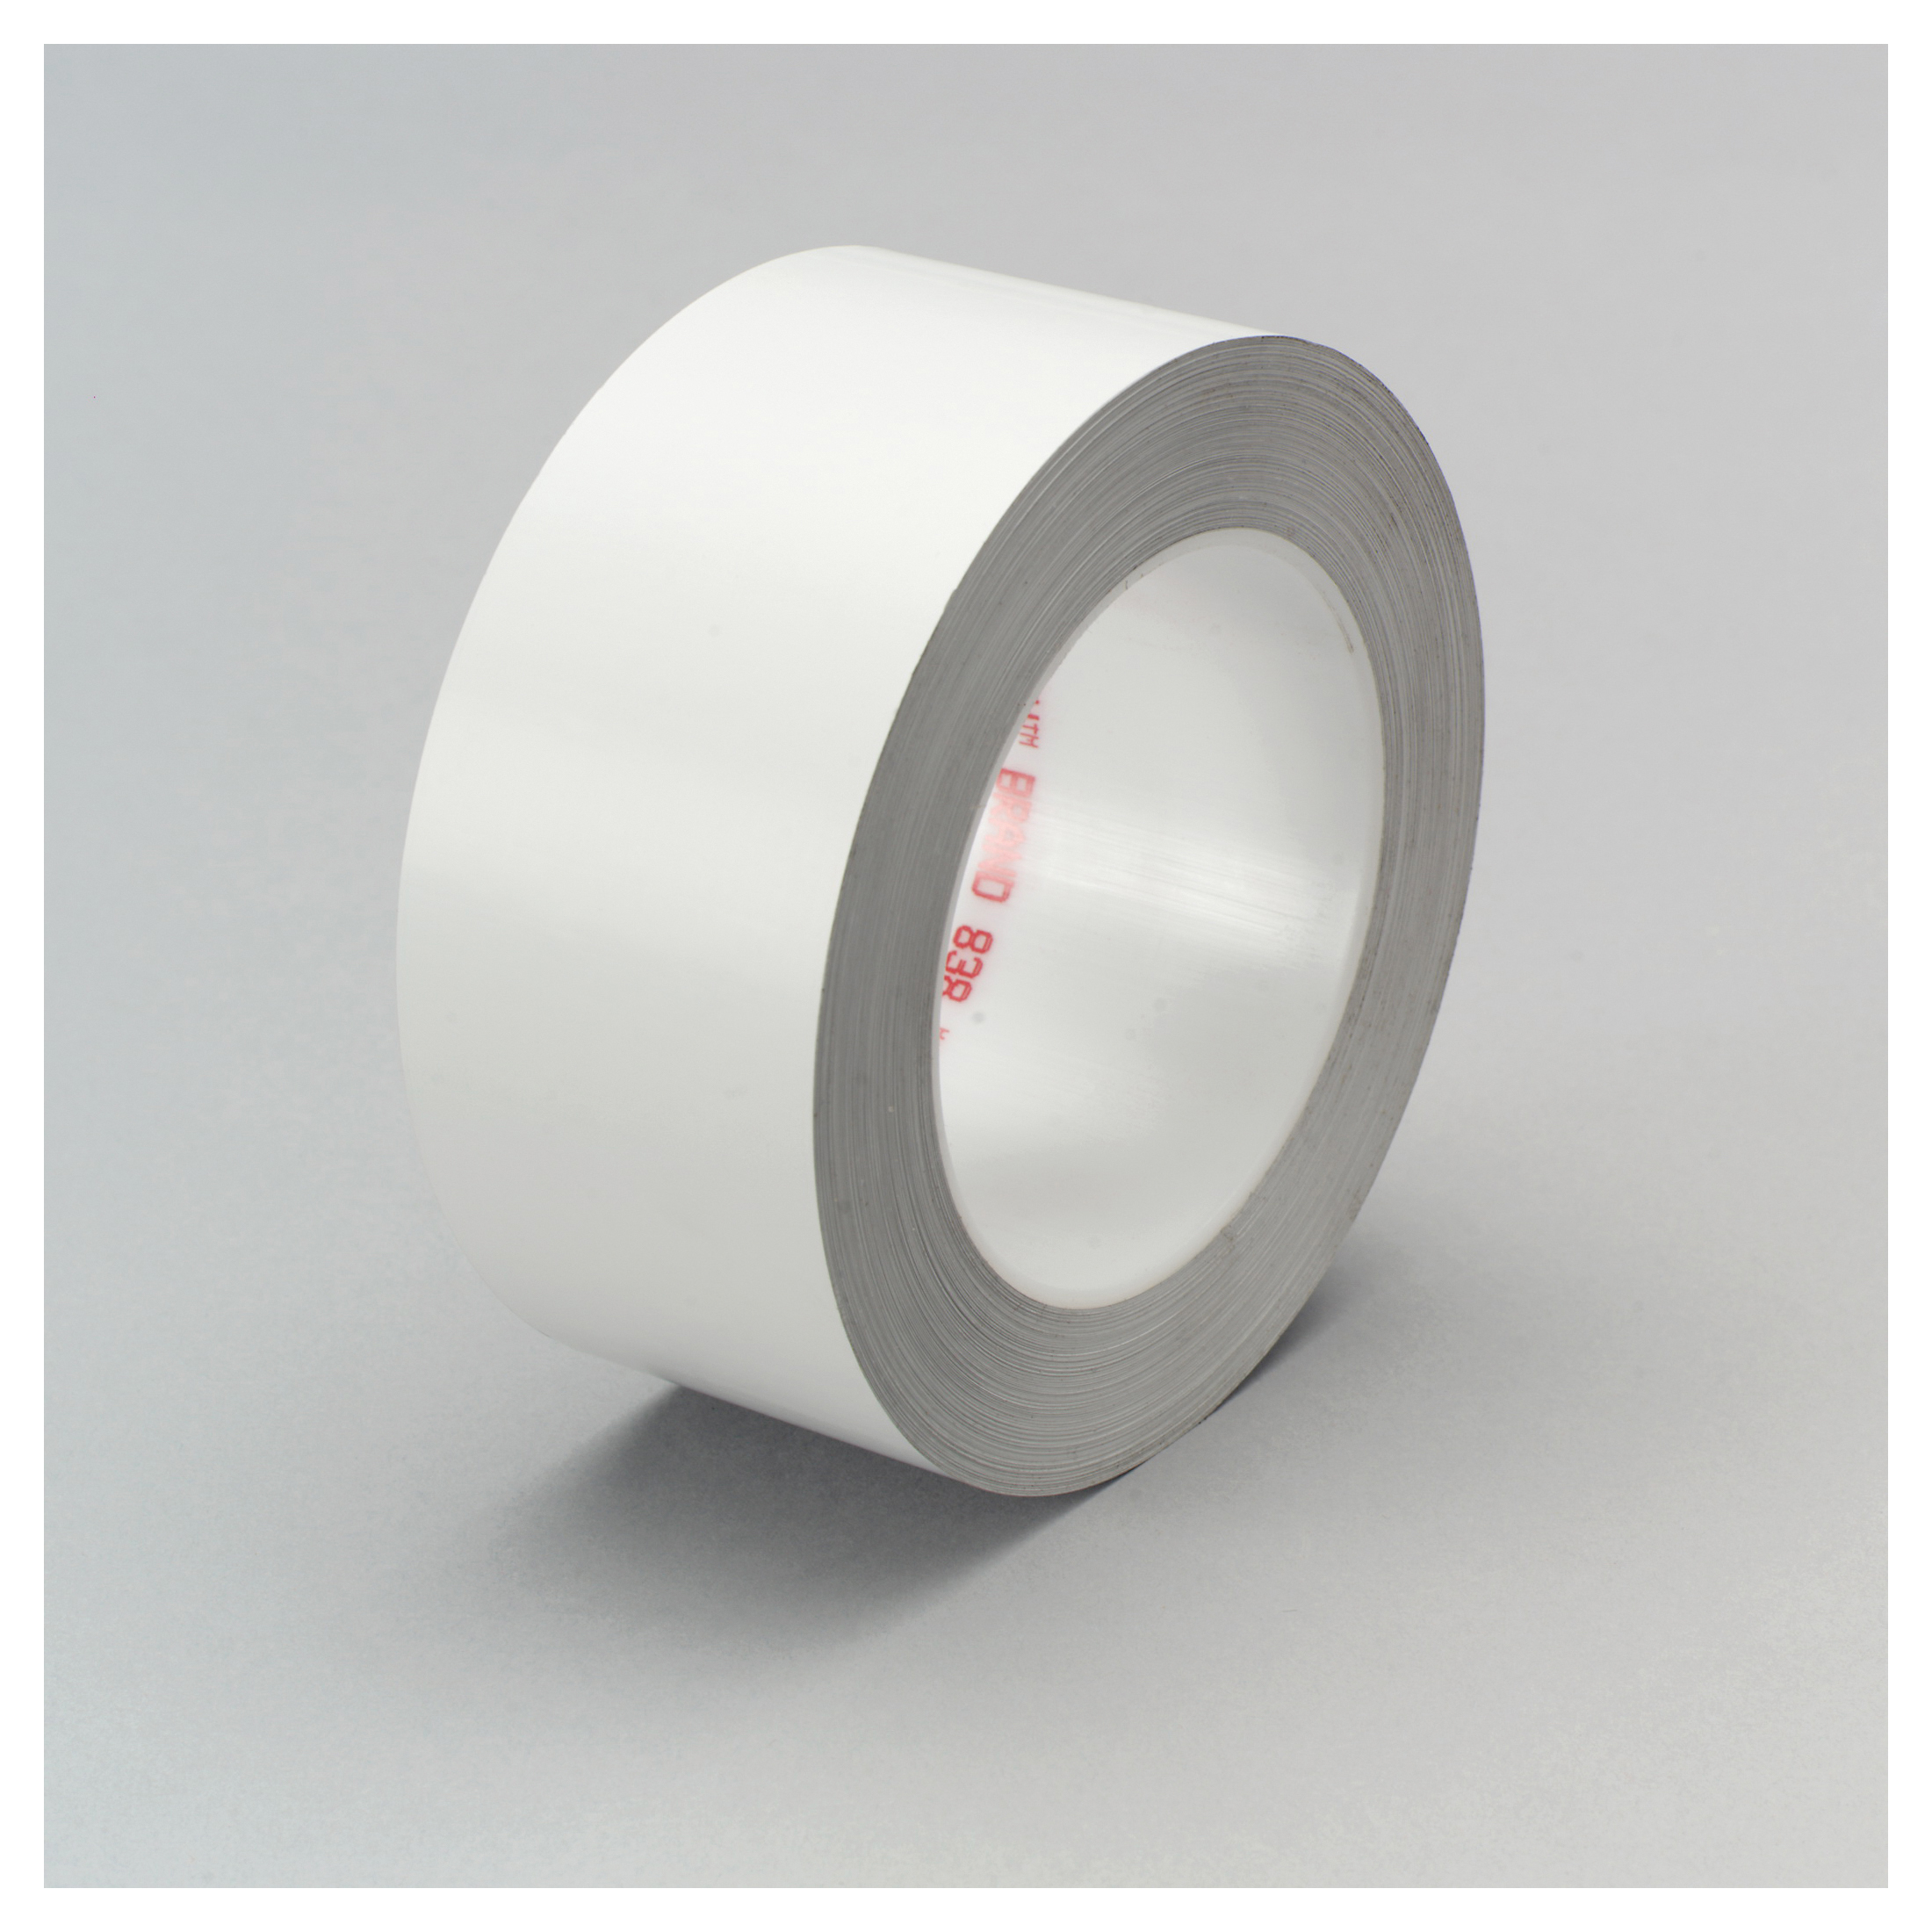 3M™ 021200-04413 Weather-Resistant Film Tape, 72 yd L x 2 in W, 3.4 mil THK, Acrylic Adhesive, 2.1 mil Tedlar® PVF Backing, White